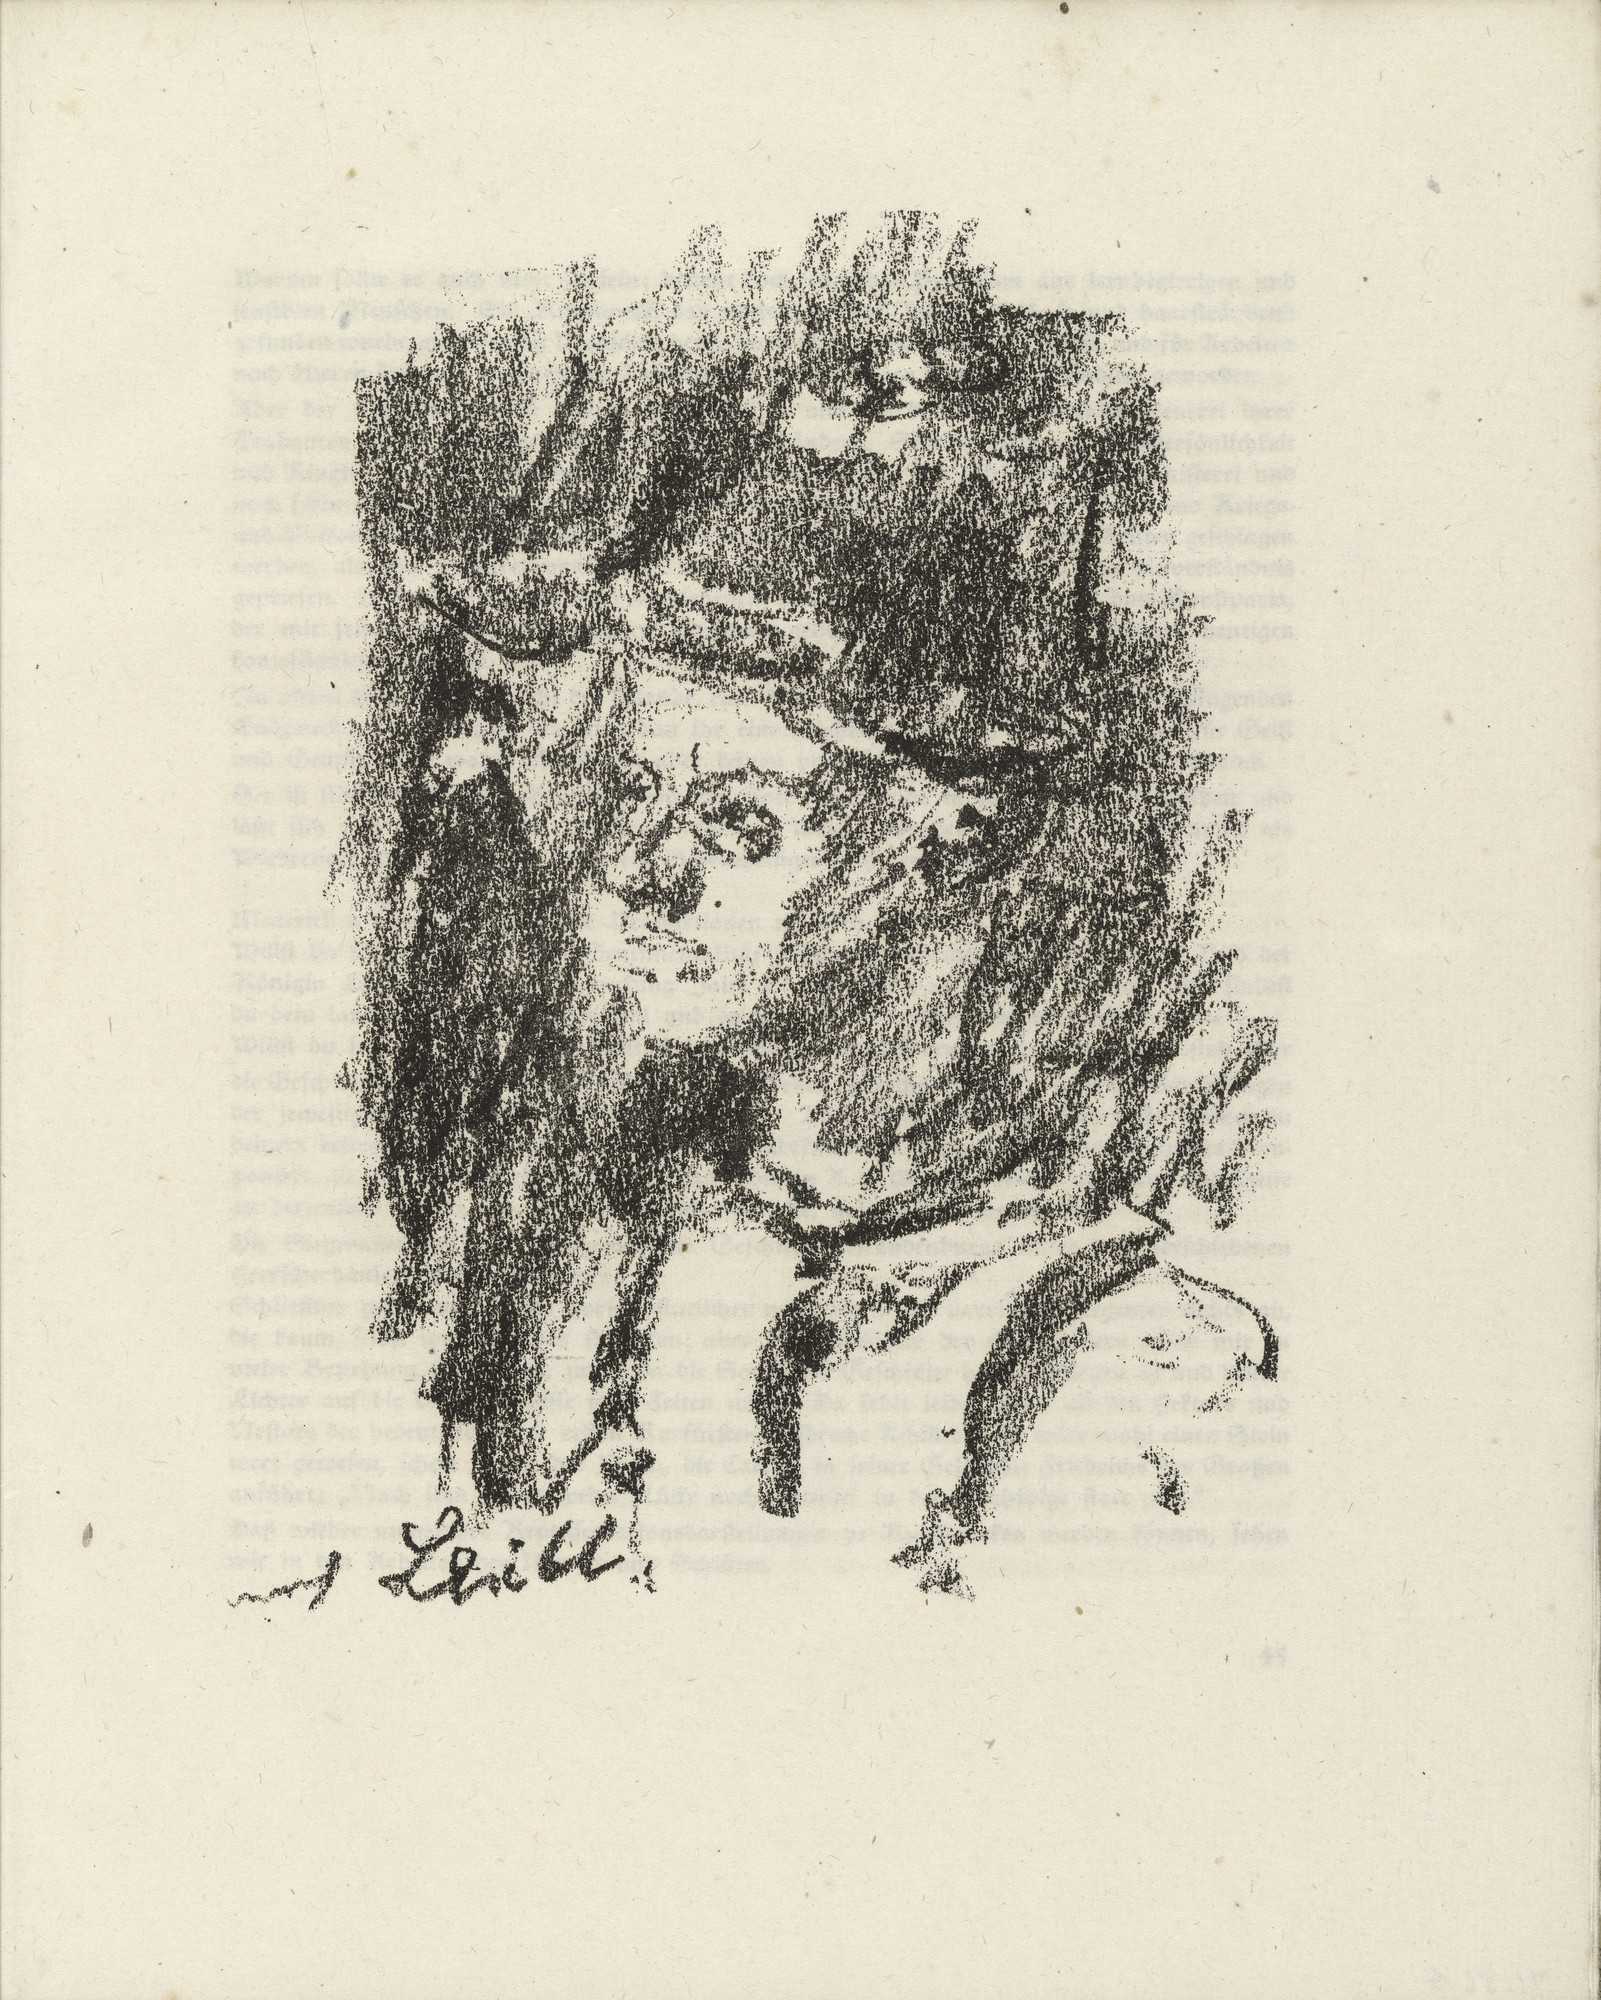 Lovis Corinth. Two Peasants after William Leibl (Zwei Bauern nach Wilhelm Leibl) (plate facing page 44) from Gesammelte Schriften (Collected Writings). 1920